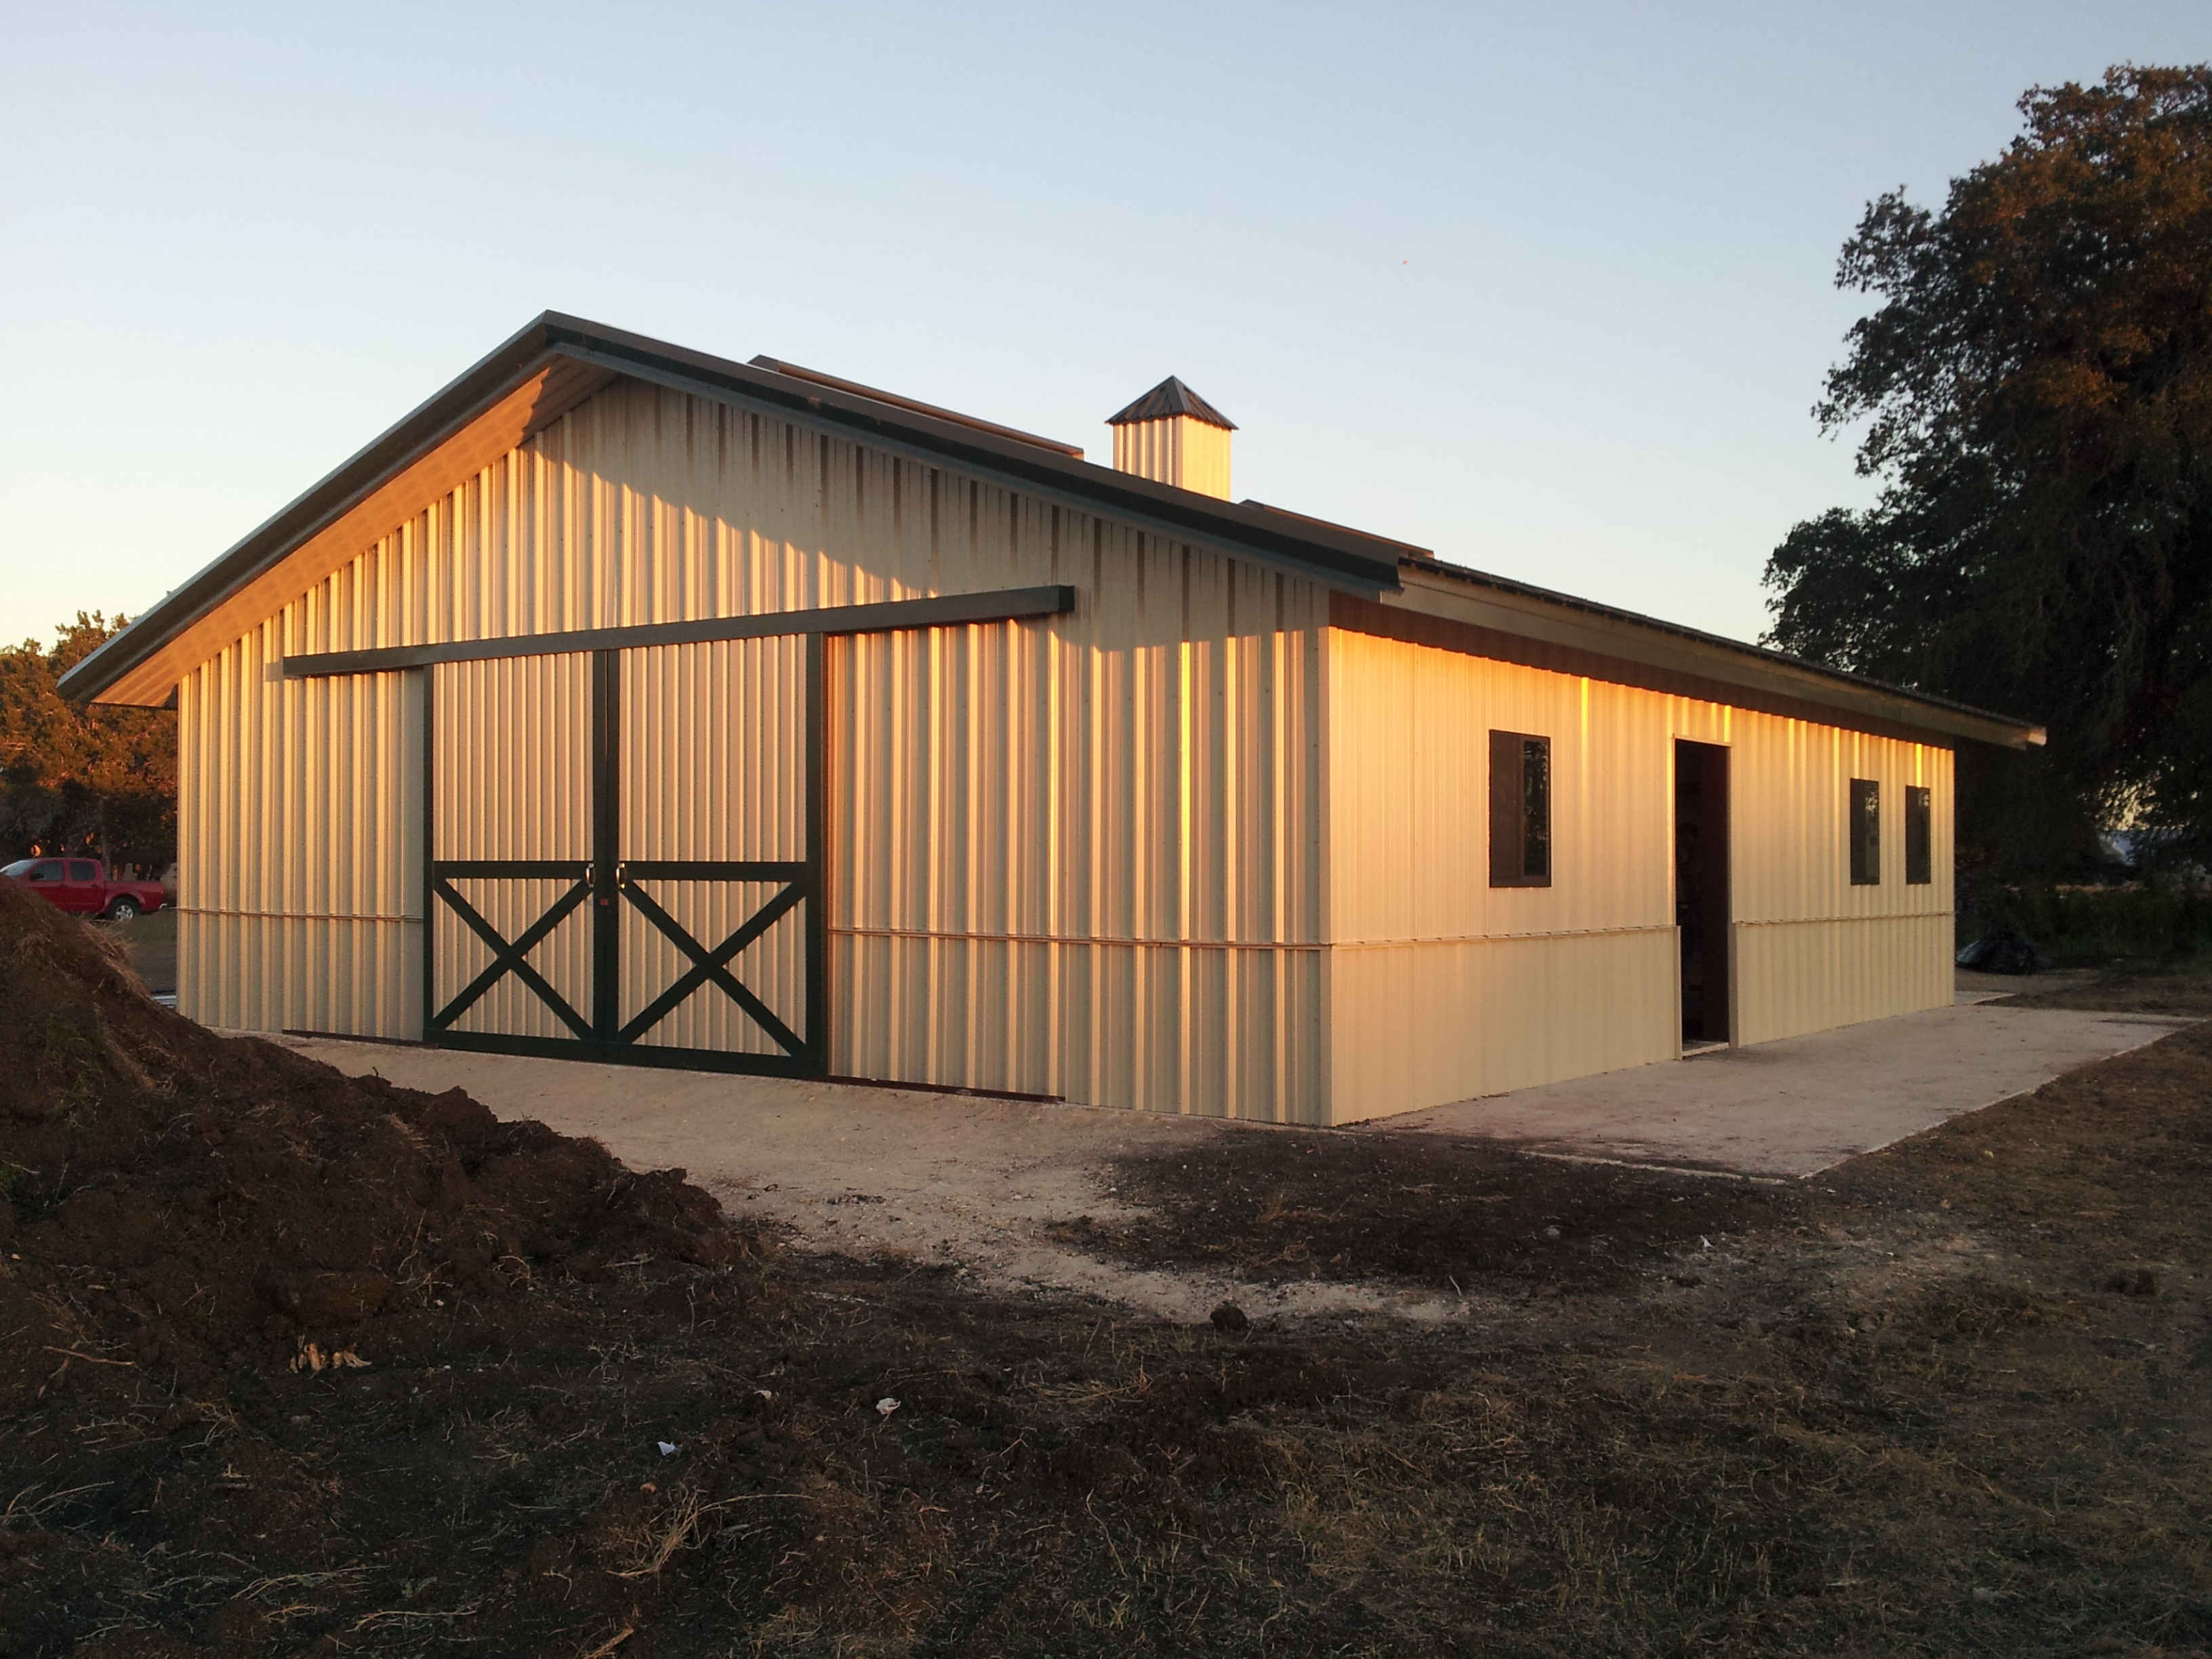 design ideas horse barn plans small horse barn designs horse barns - Horse Barn Design Ideas